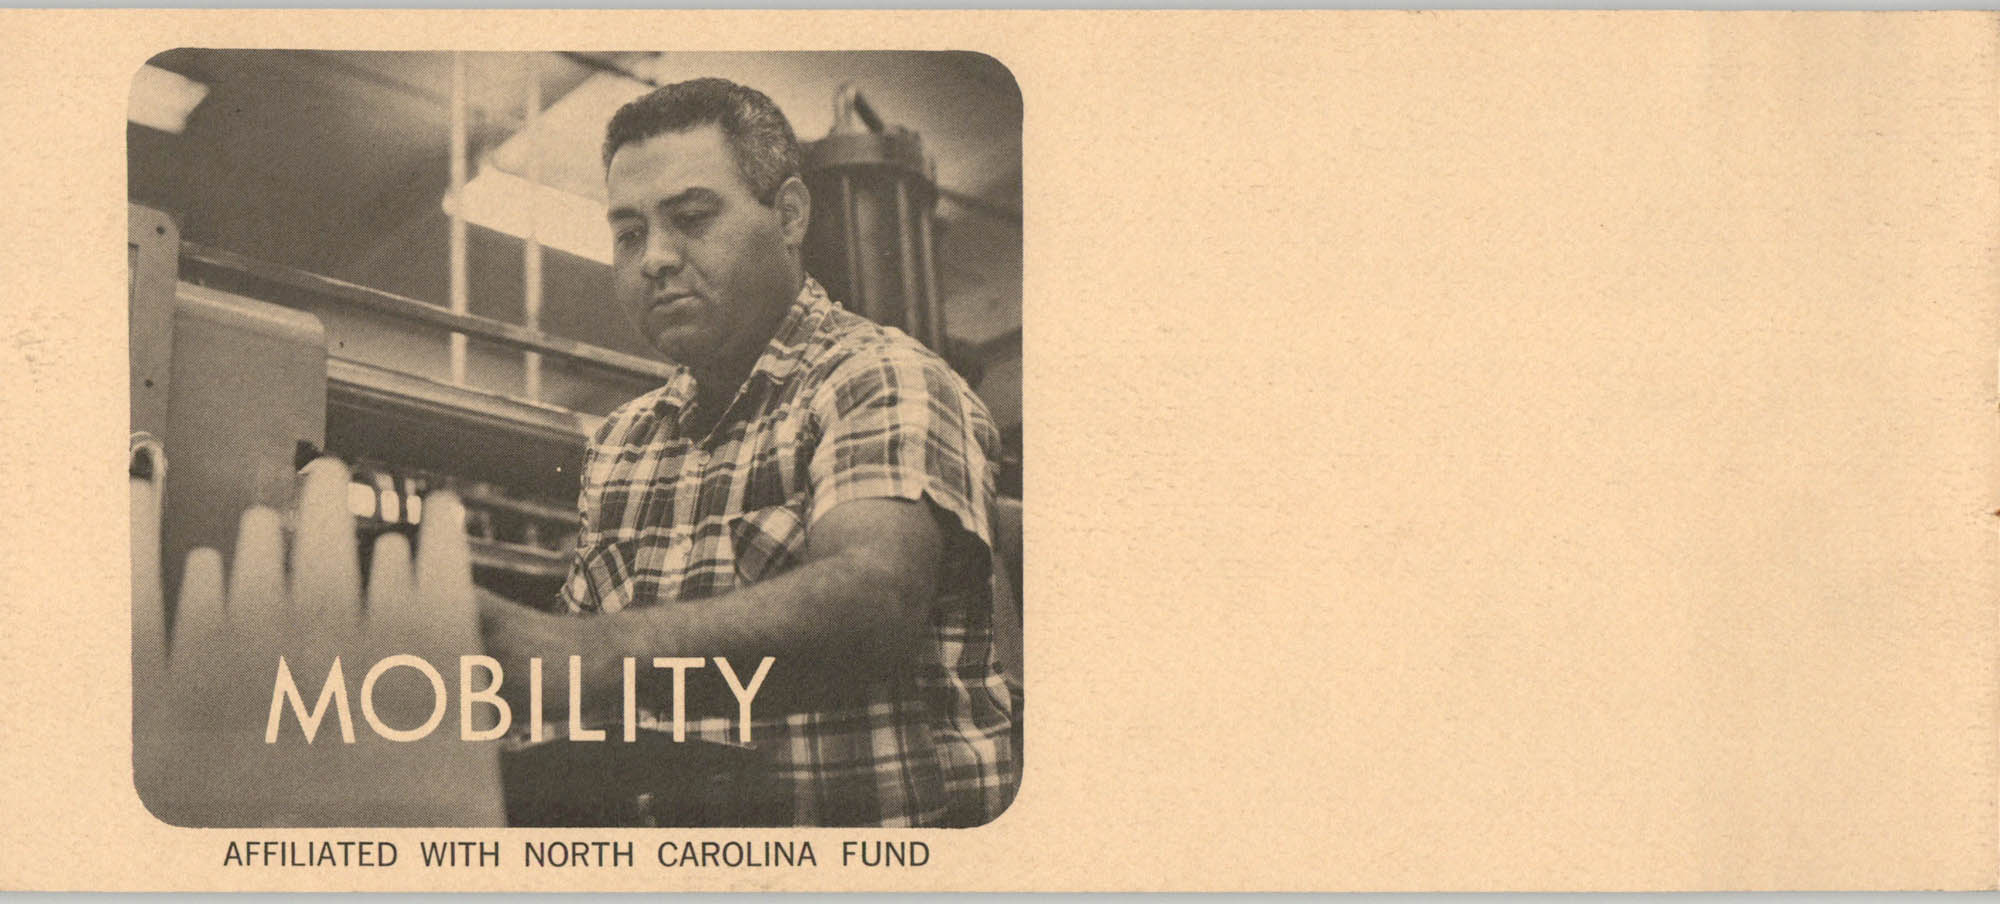 The Mobility Project, Back Cover